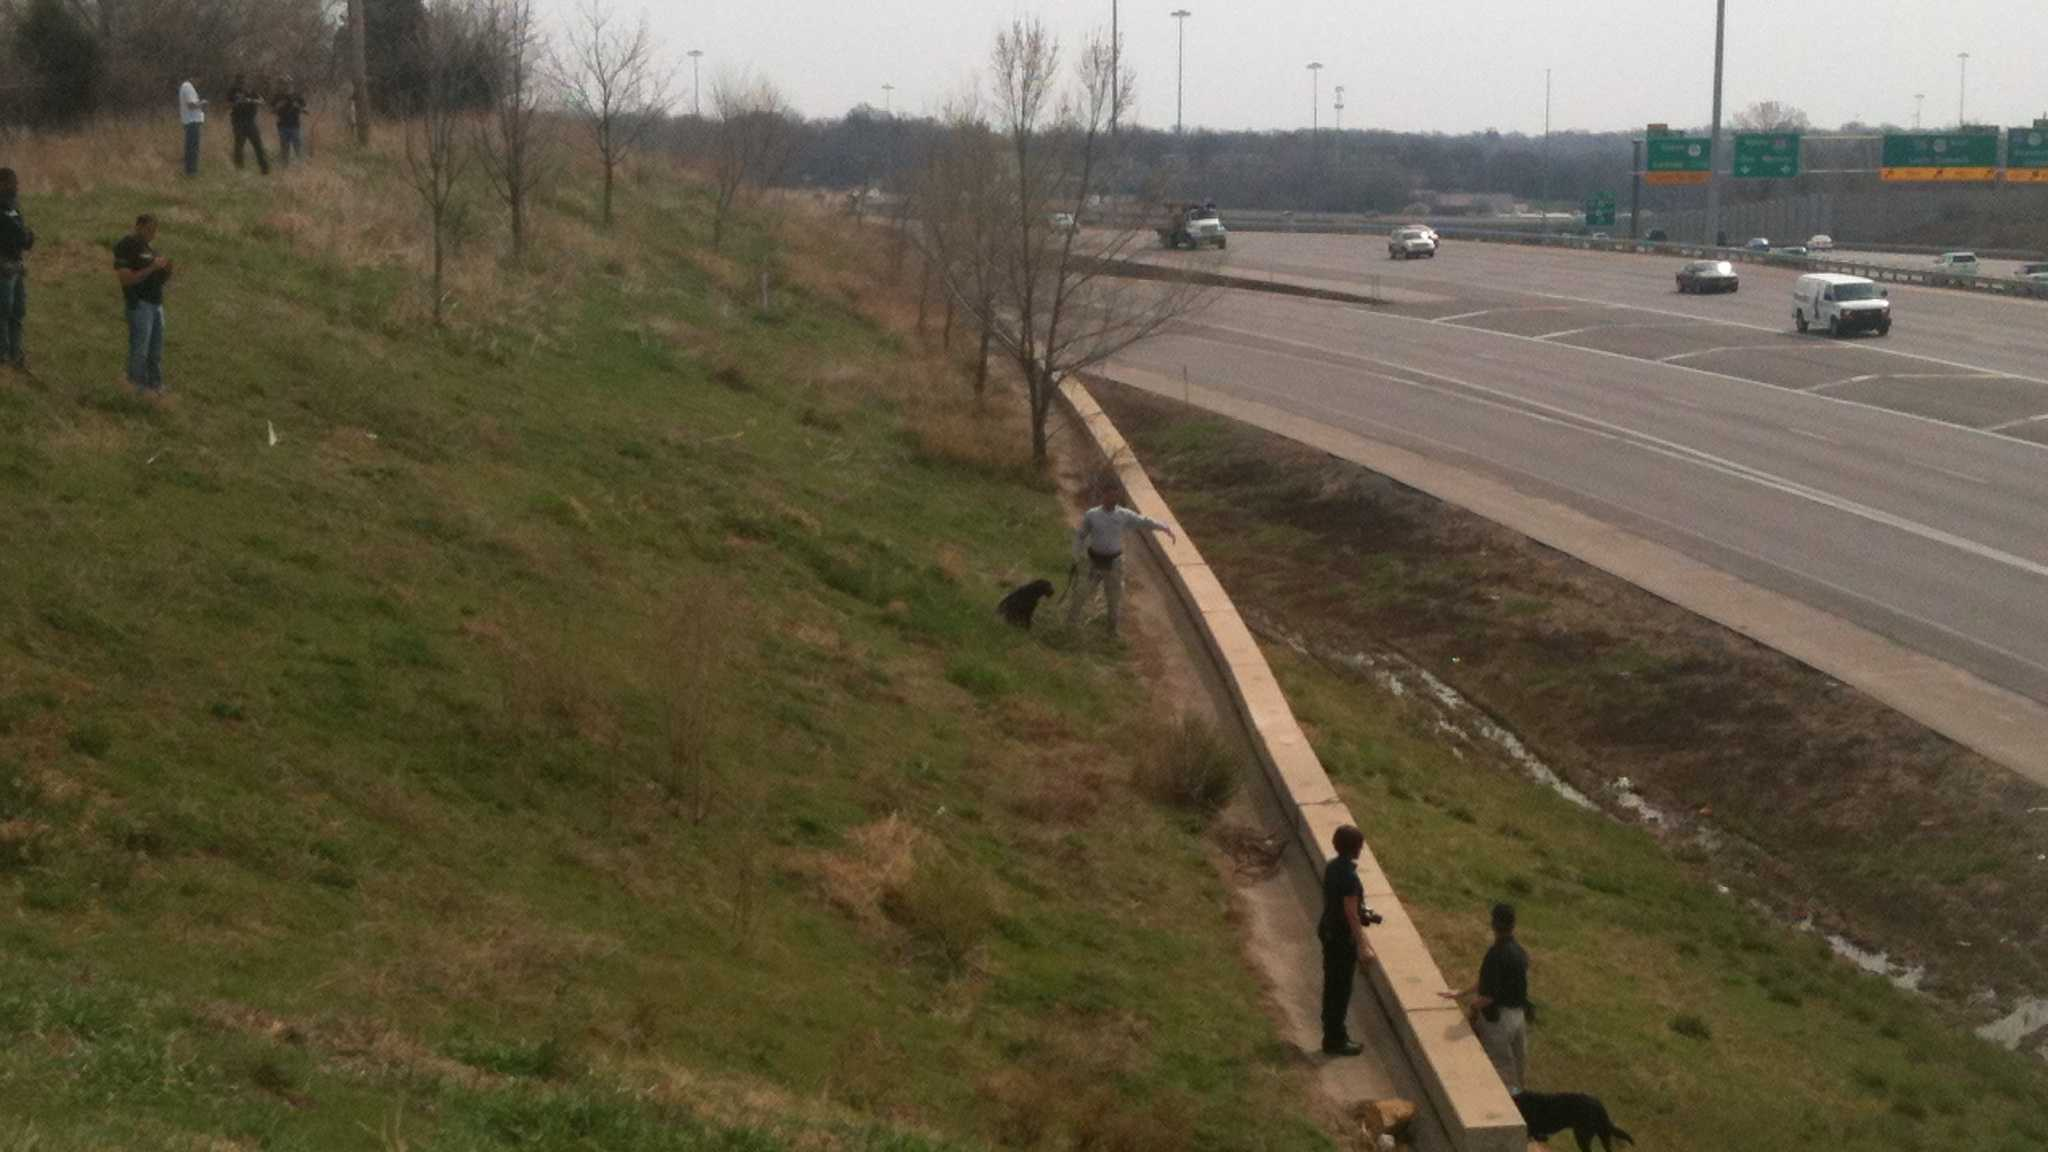 Police and dogs searching near Grandview Triagle for highway shooter